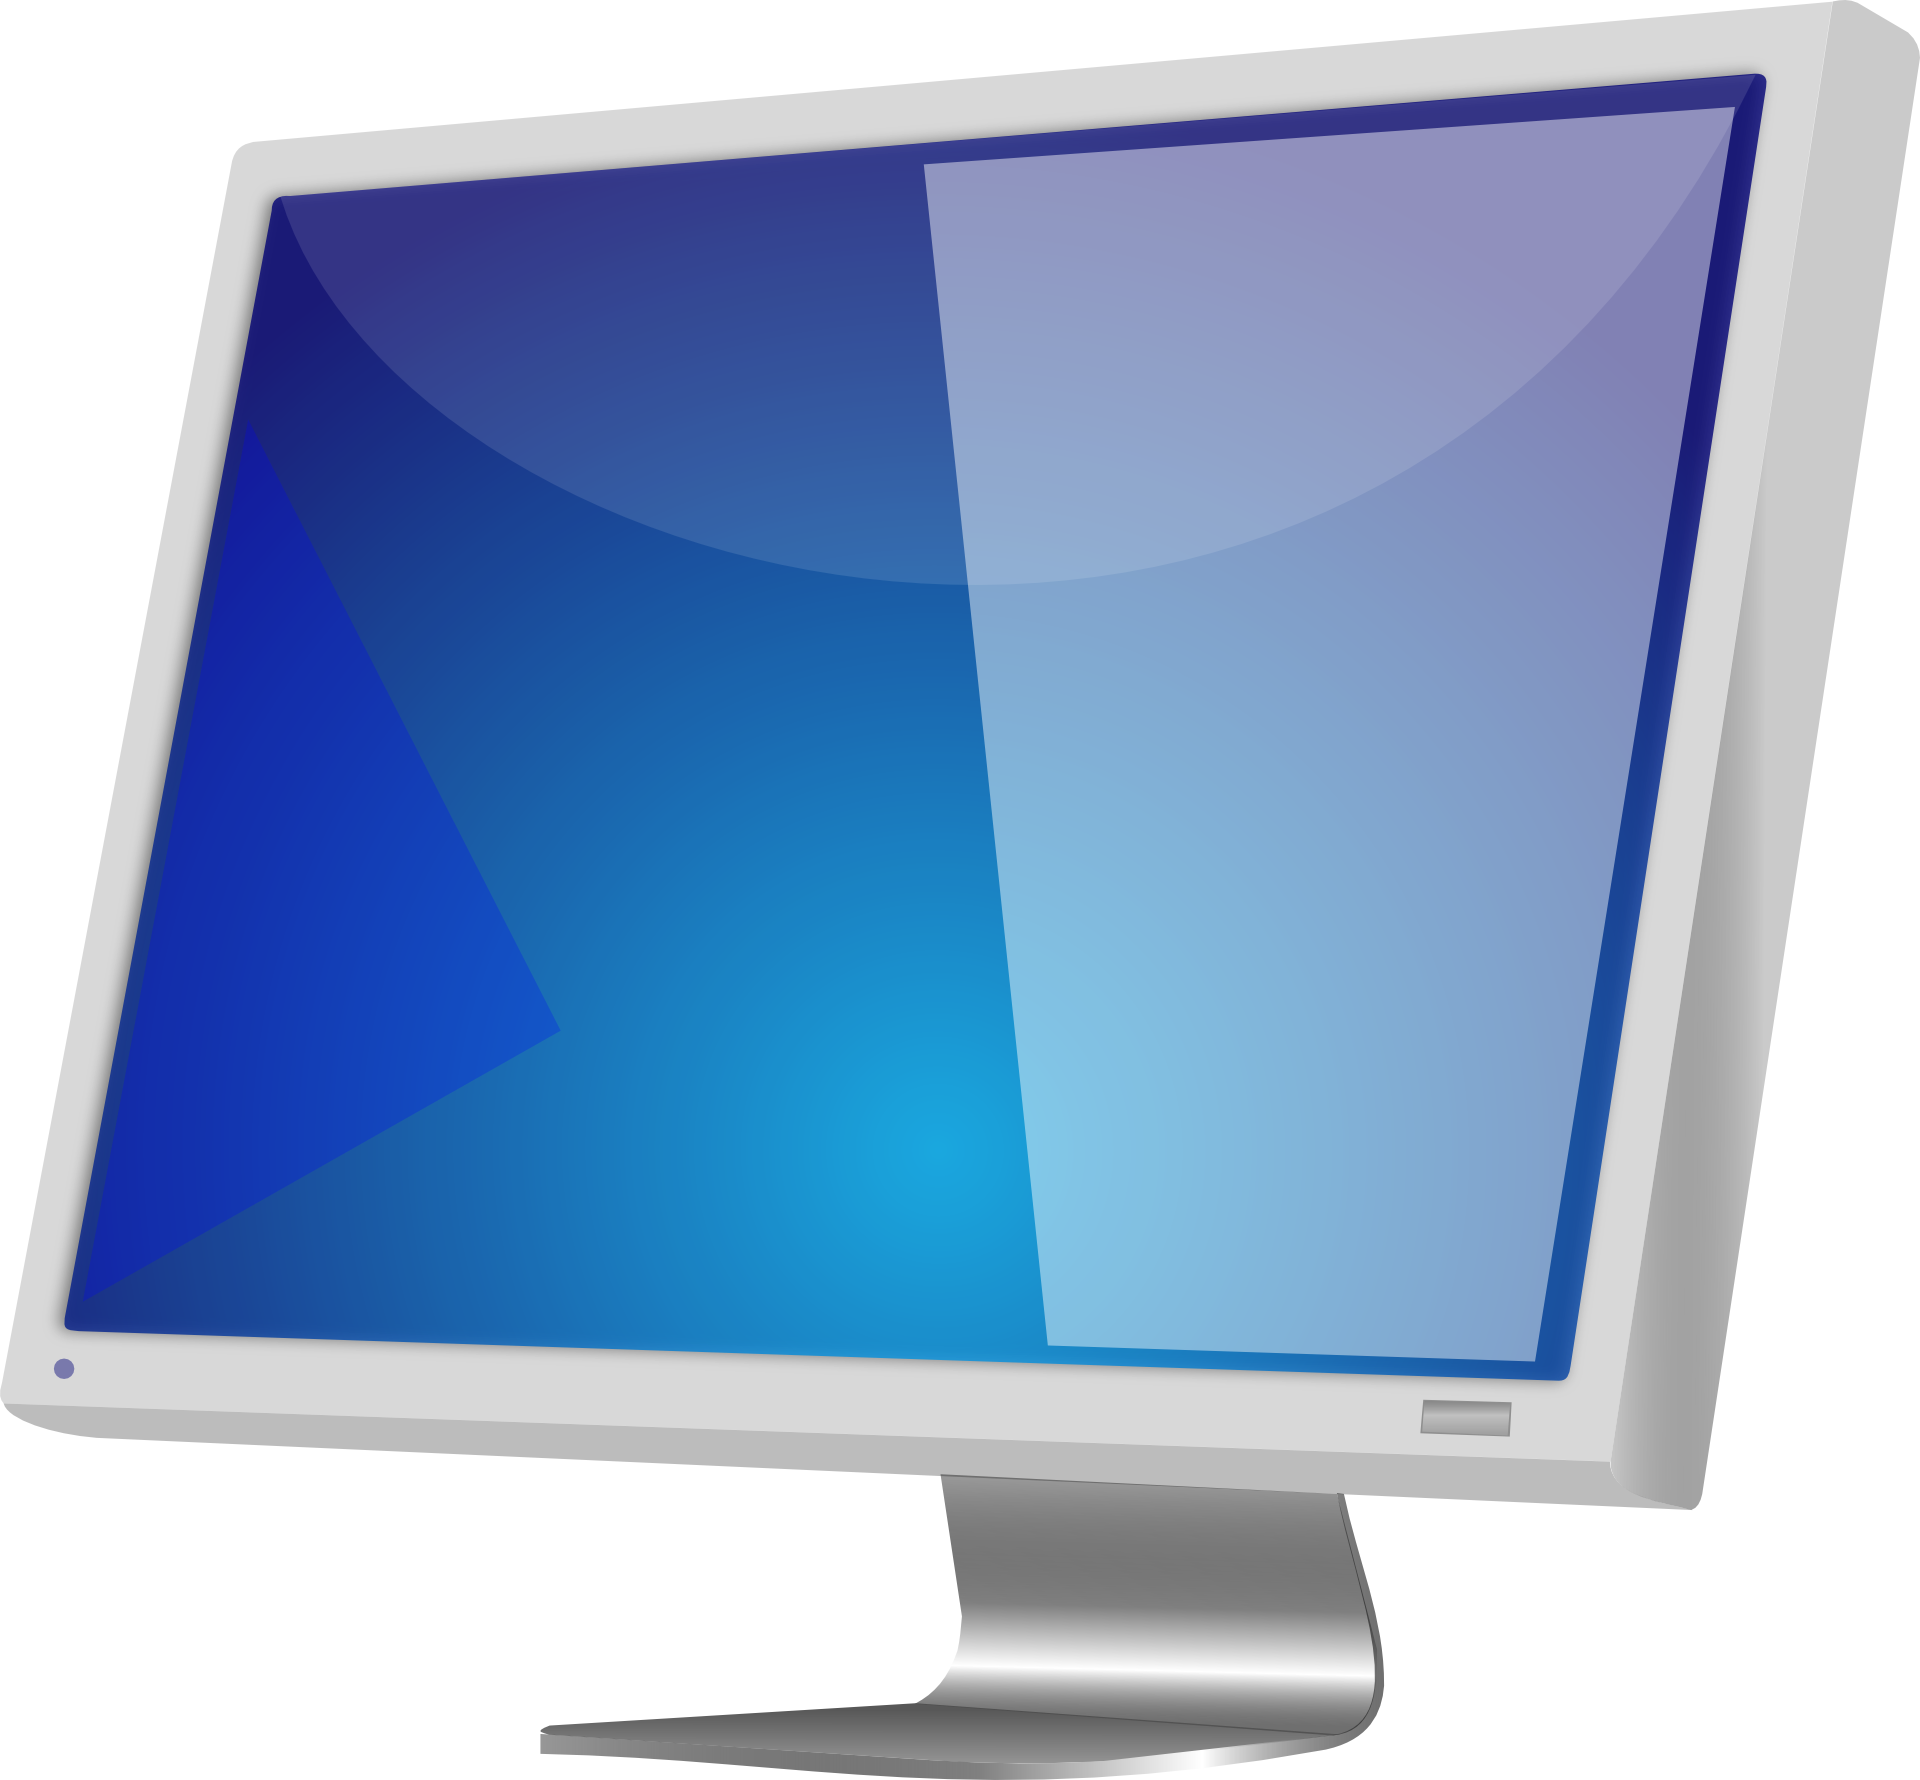 Blue screen monitor png. Computer free image